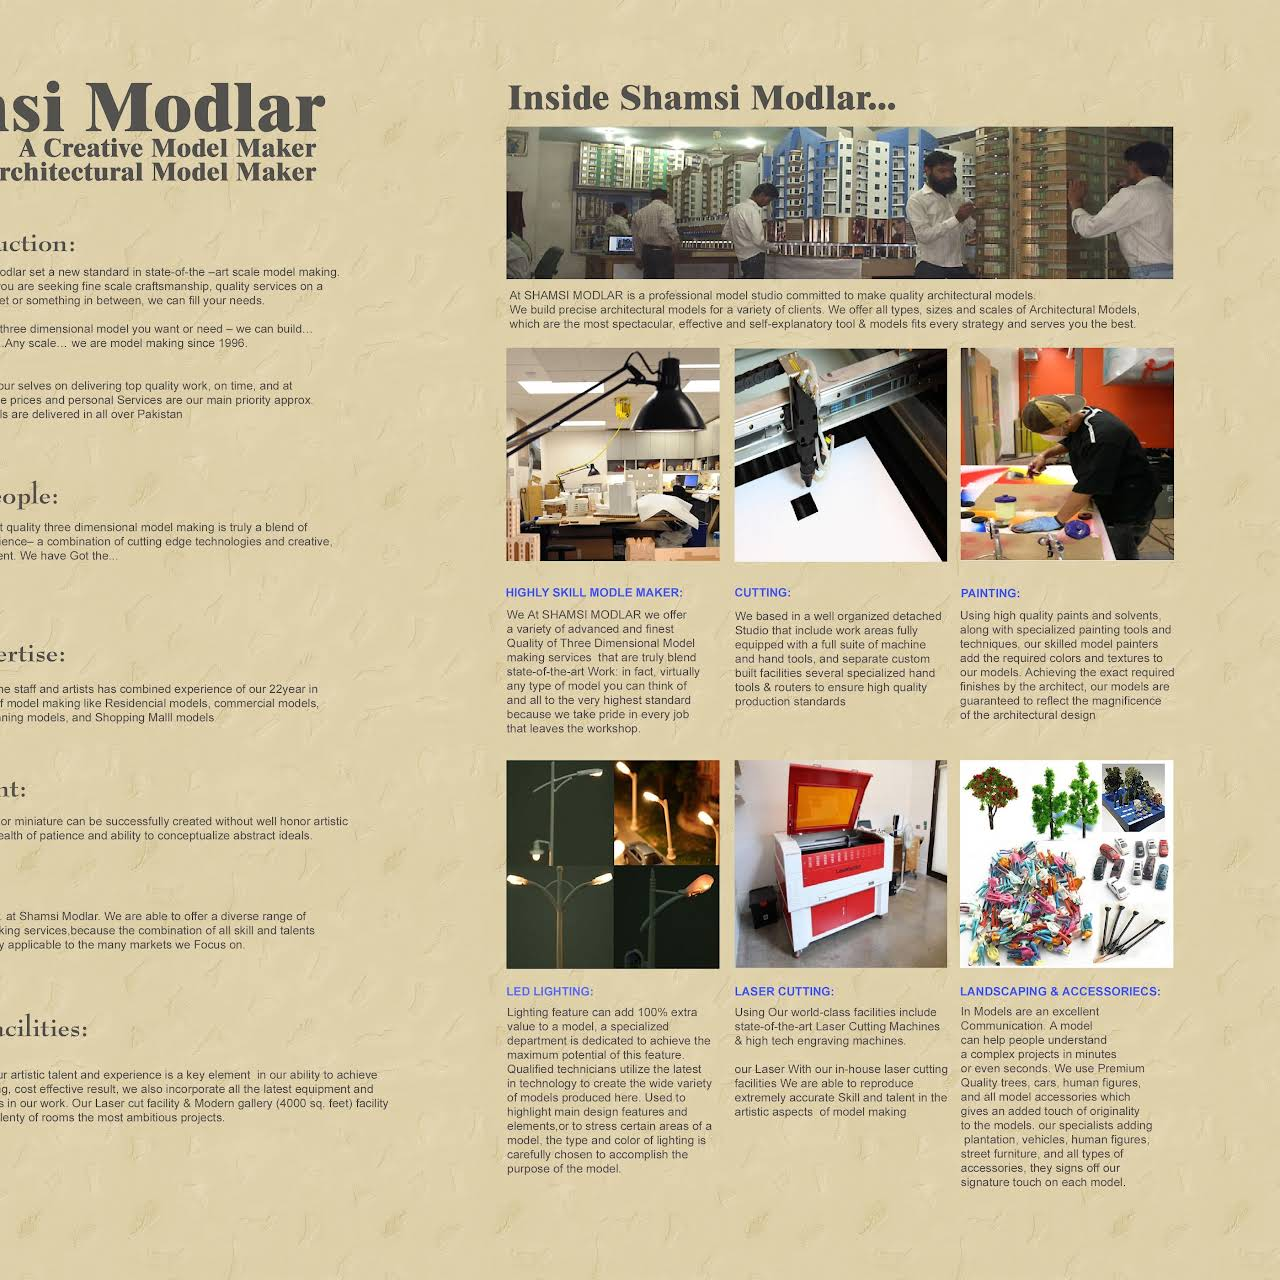 SHAMSI MODLAR - Architectural And Engineering Model Maker in